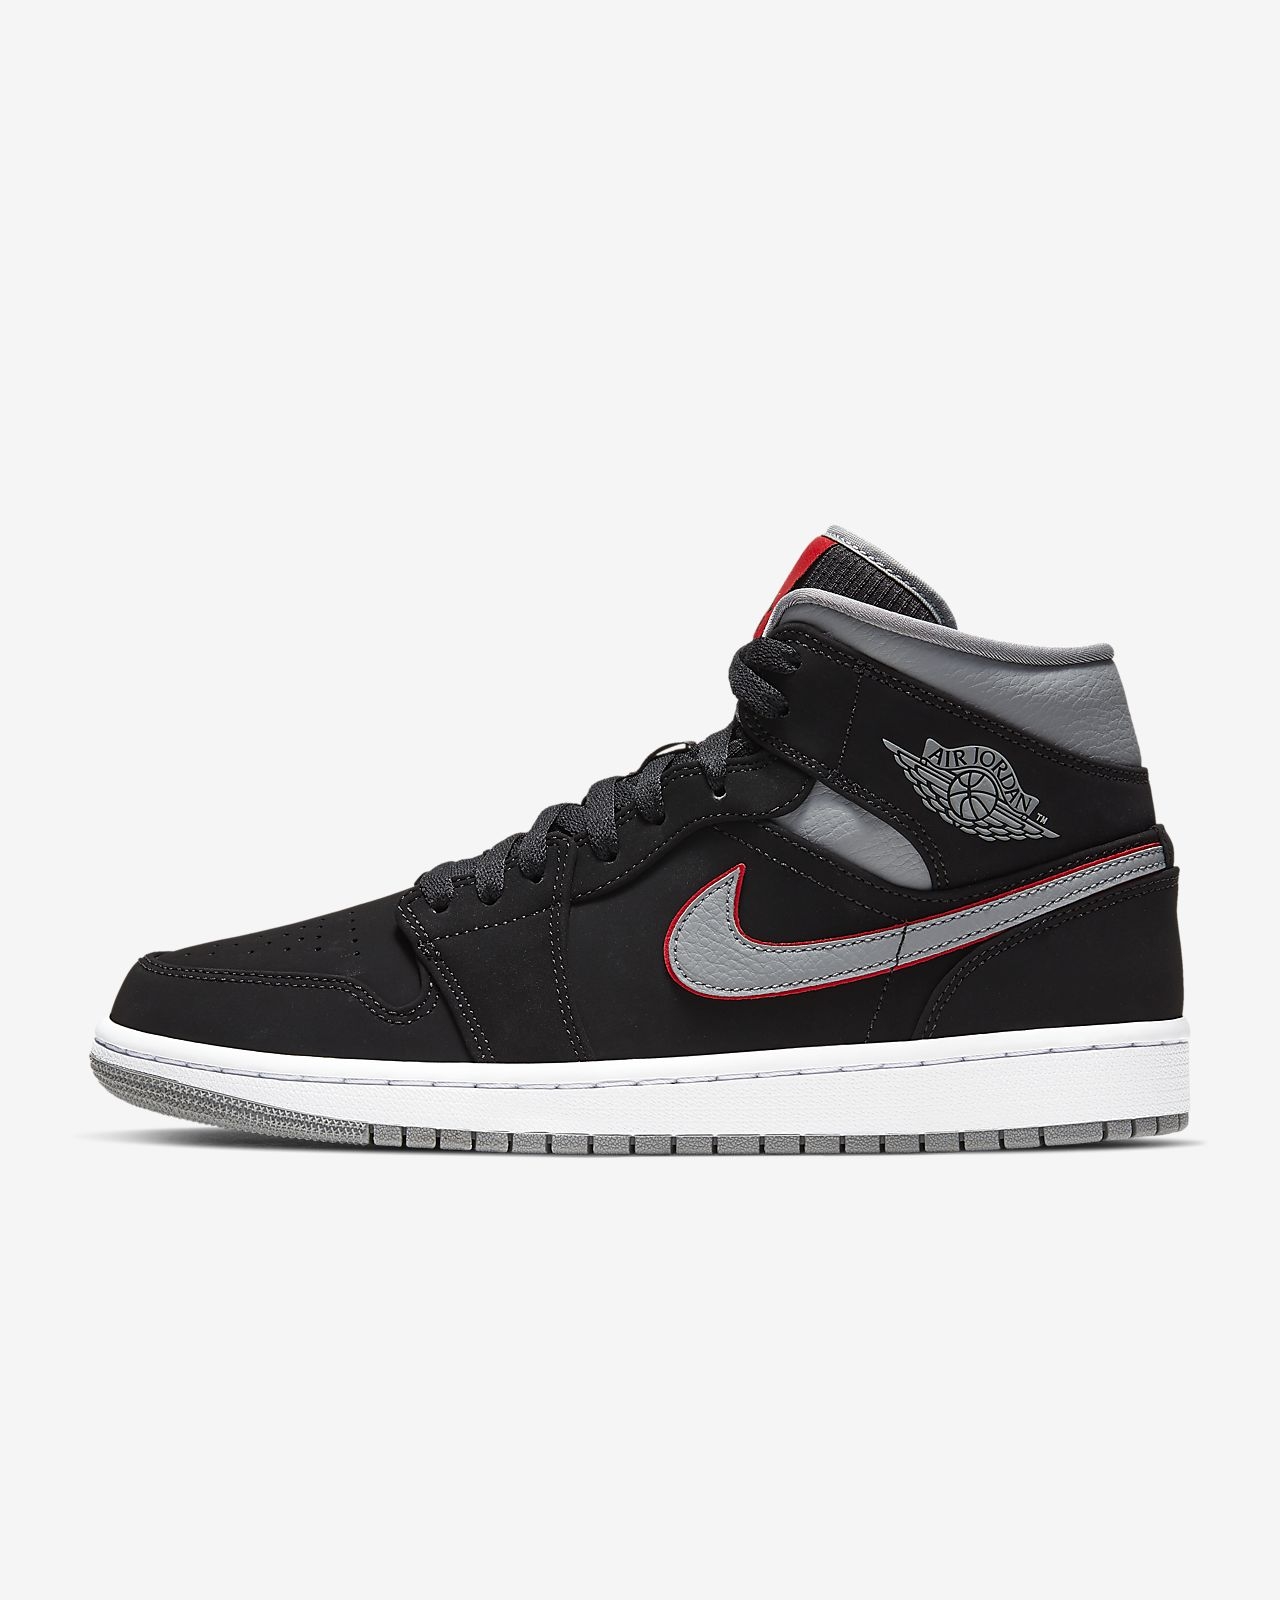 on sale 28230 c2ee6 Men s Shoe. Air Jordan 1 Mid